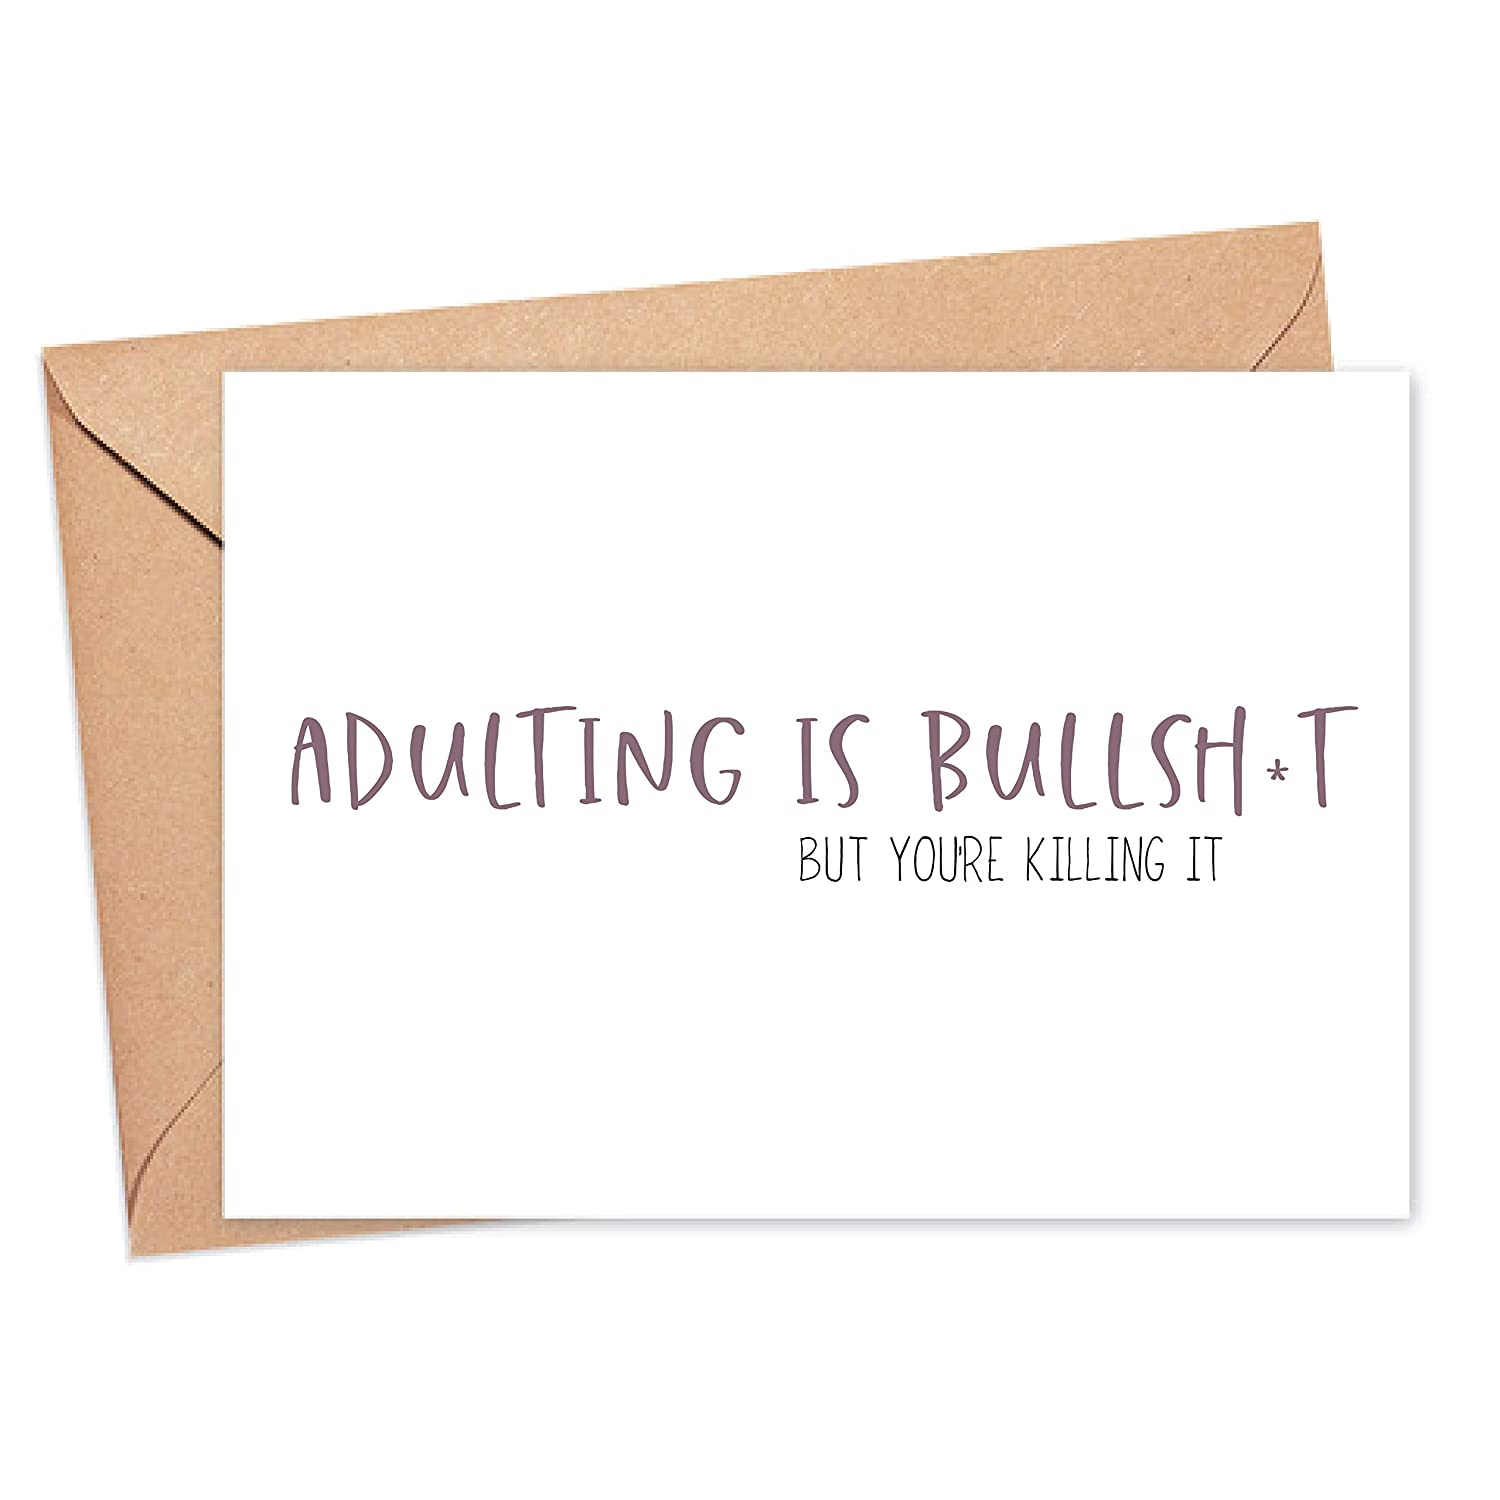 Motivation Card Daily bargain sale - Sale Special Price Adulting is Bullshit It Killing But are You